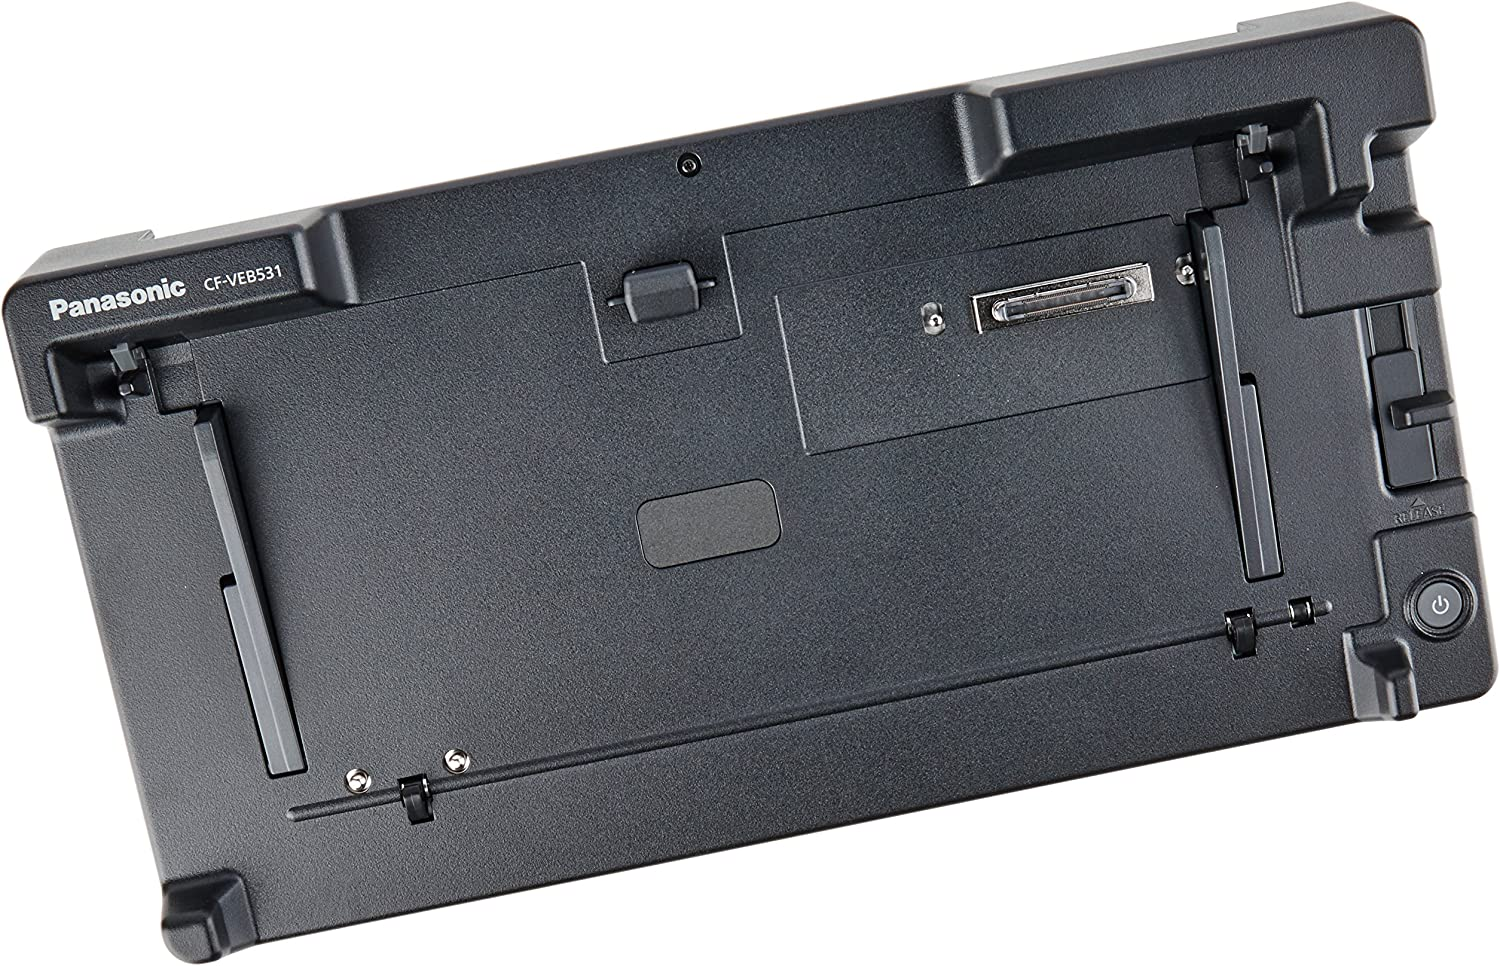 Panasonic Toughbook CF-53 MK1/MKII Port Replicator (CF-VEB531U)